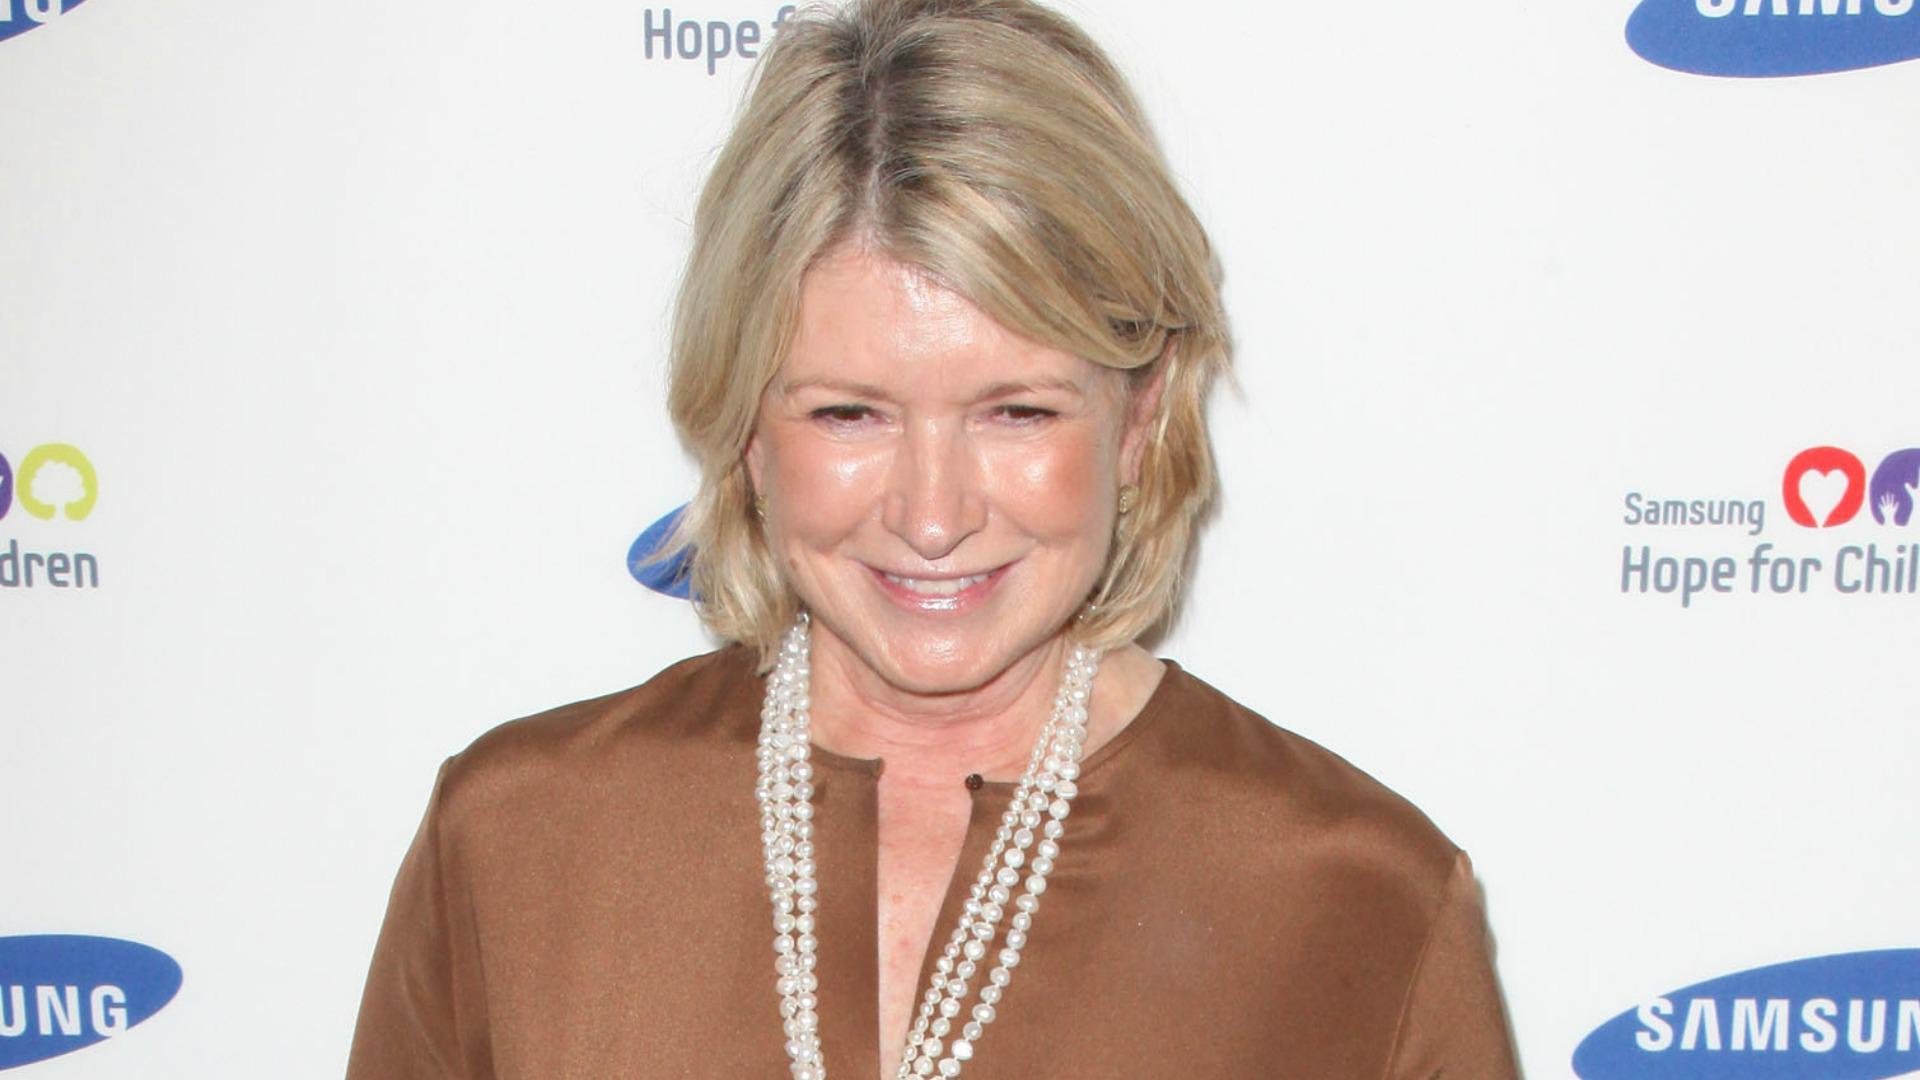 Martha Stewart's on the market: For a man, not more pets